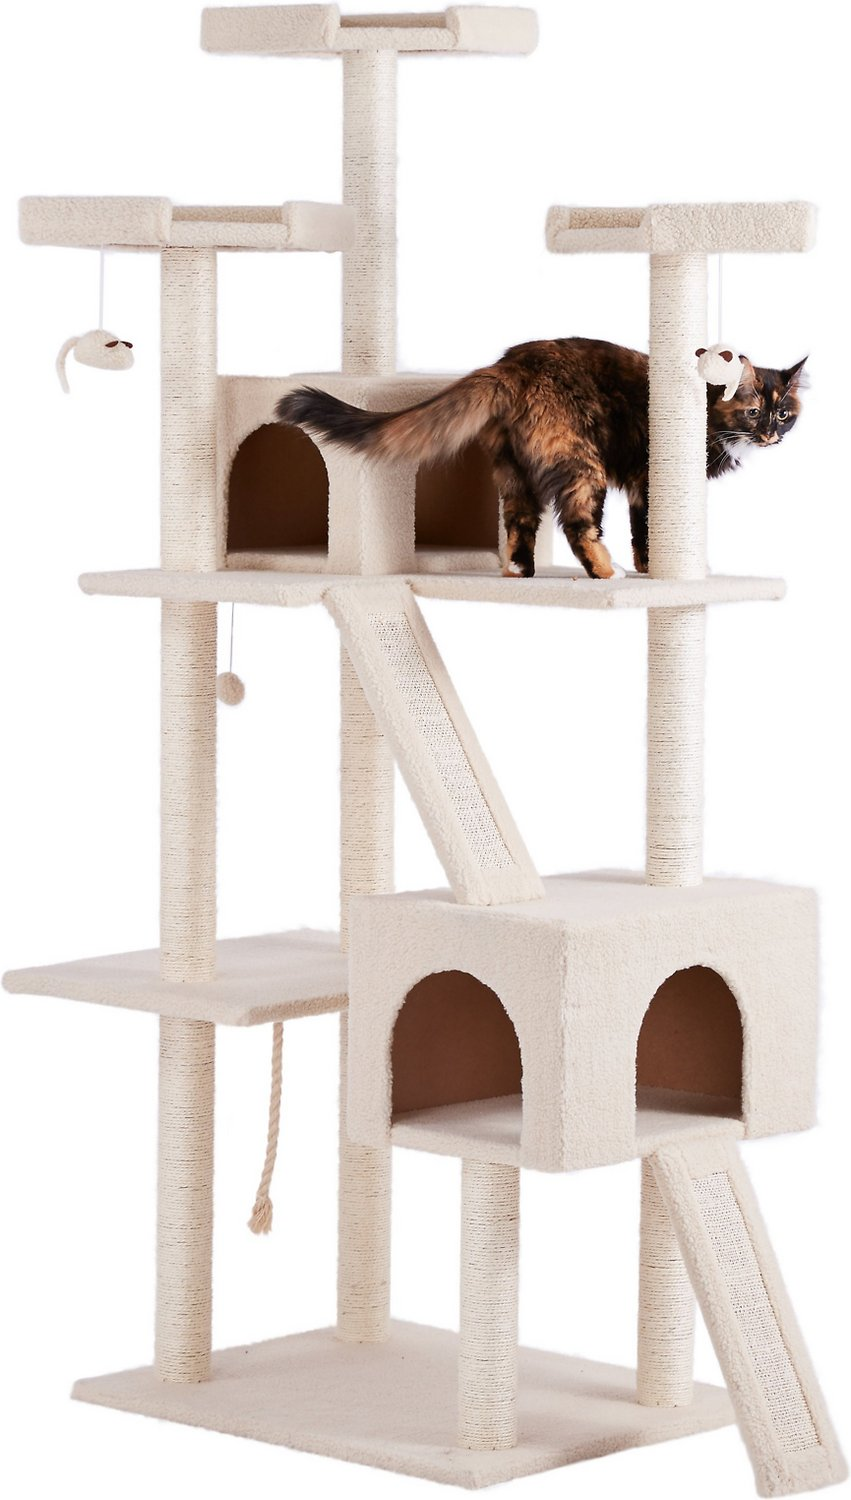 Frisco 72-in Cat Tree, Large Base, Brown recommendations